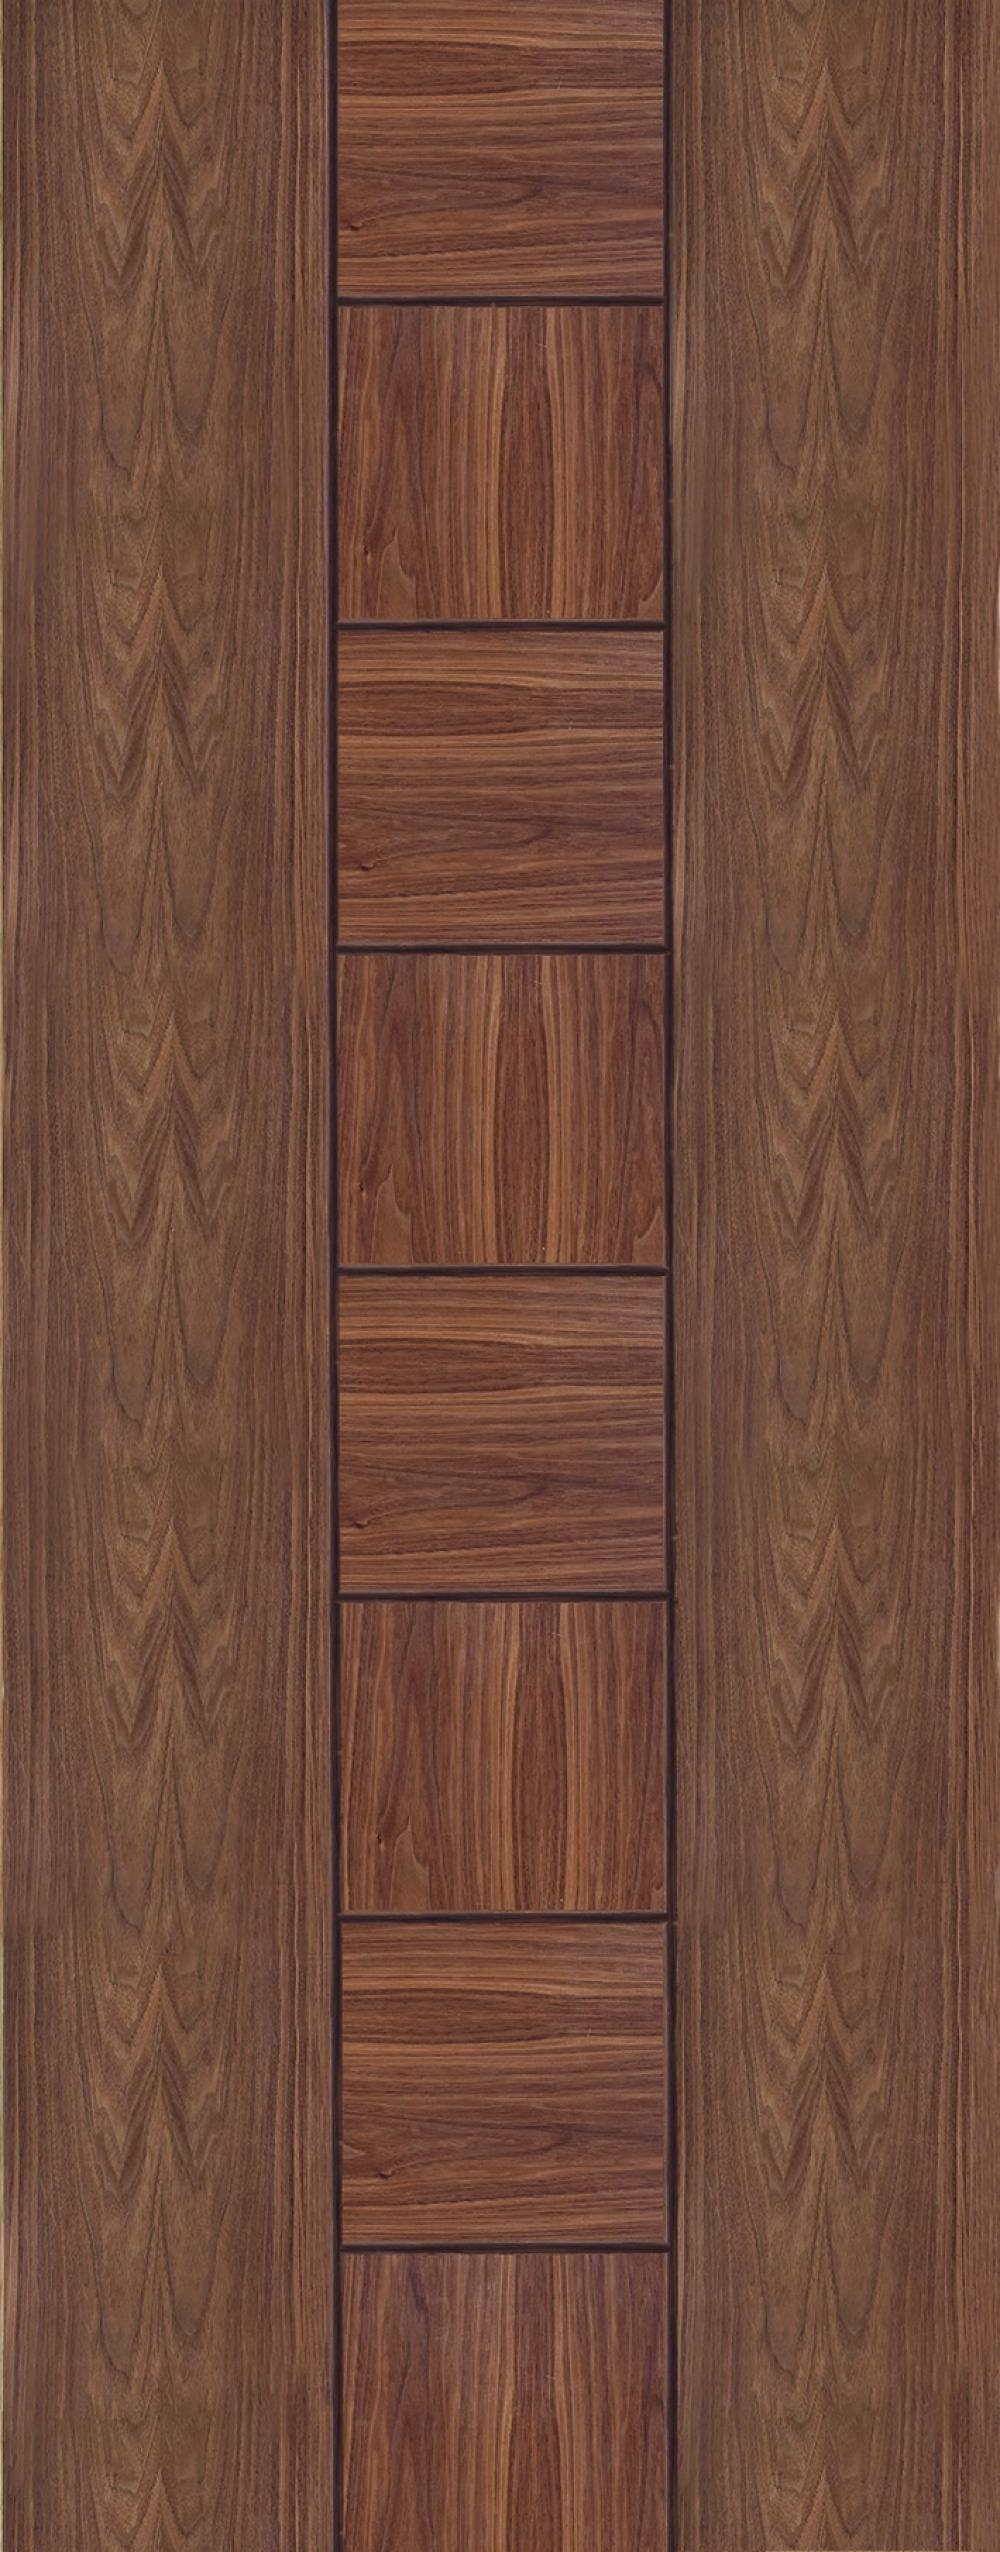 Messina Walnut Prefinished Interior Door Express Doors